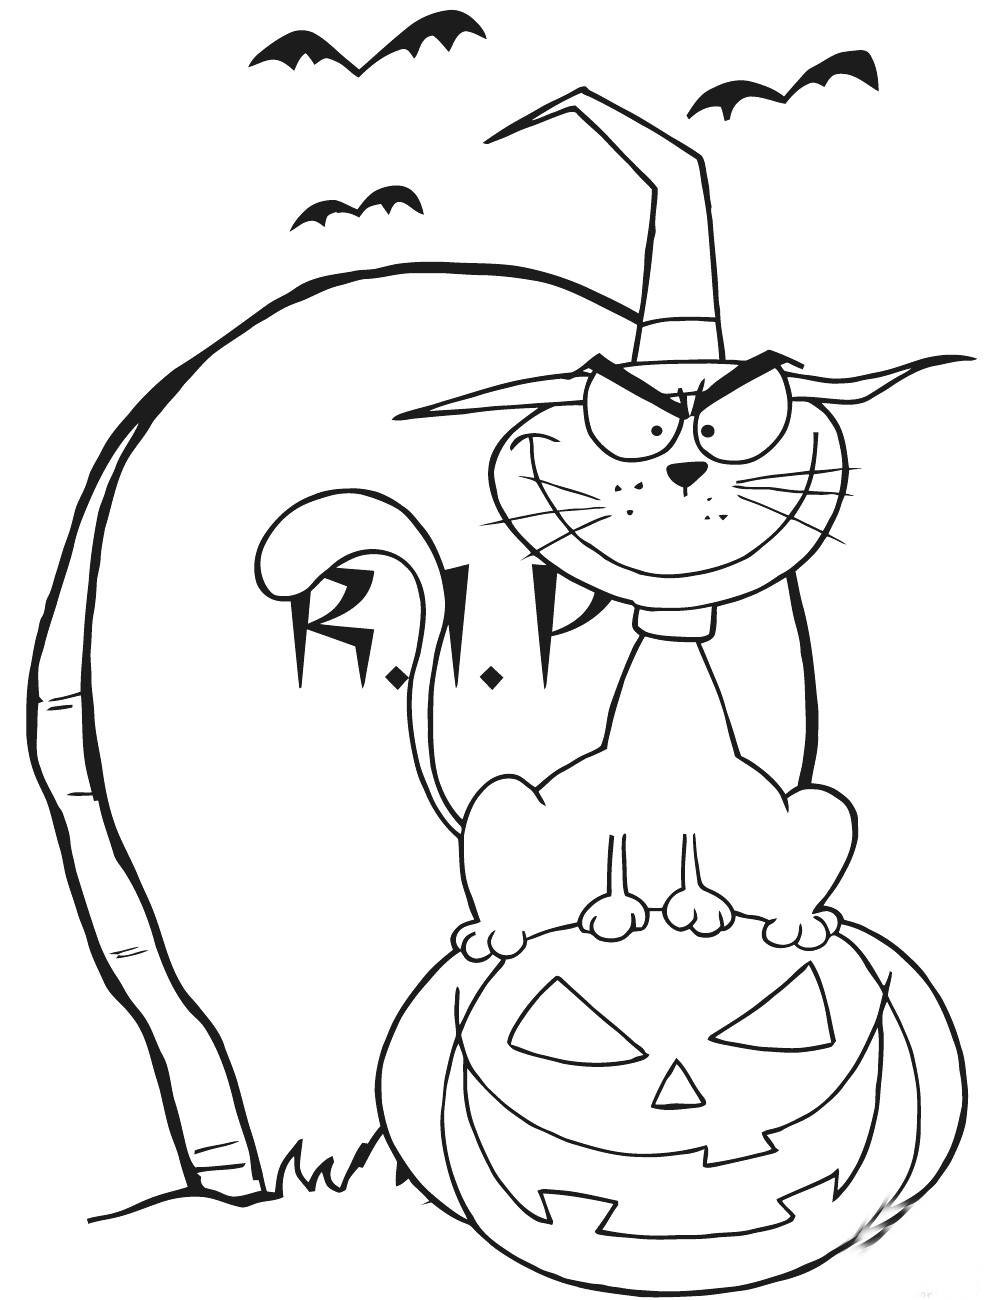 coloring halloween halloween pumpkin coloring pages for kids halloween coloring